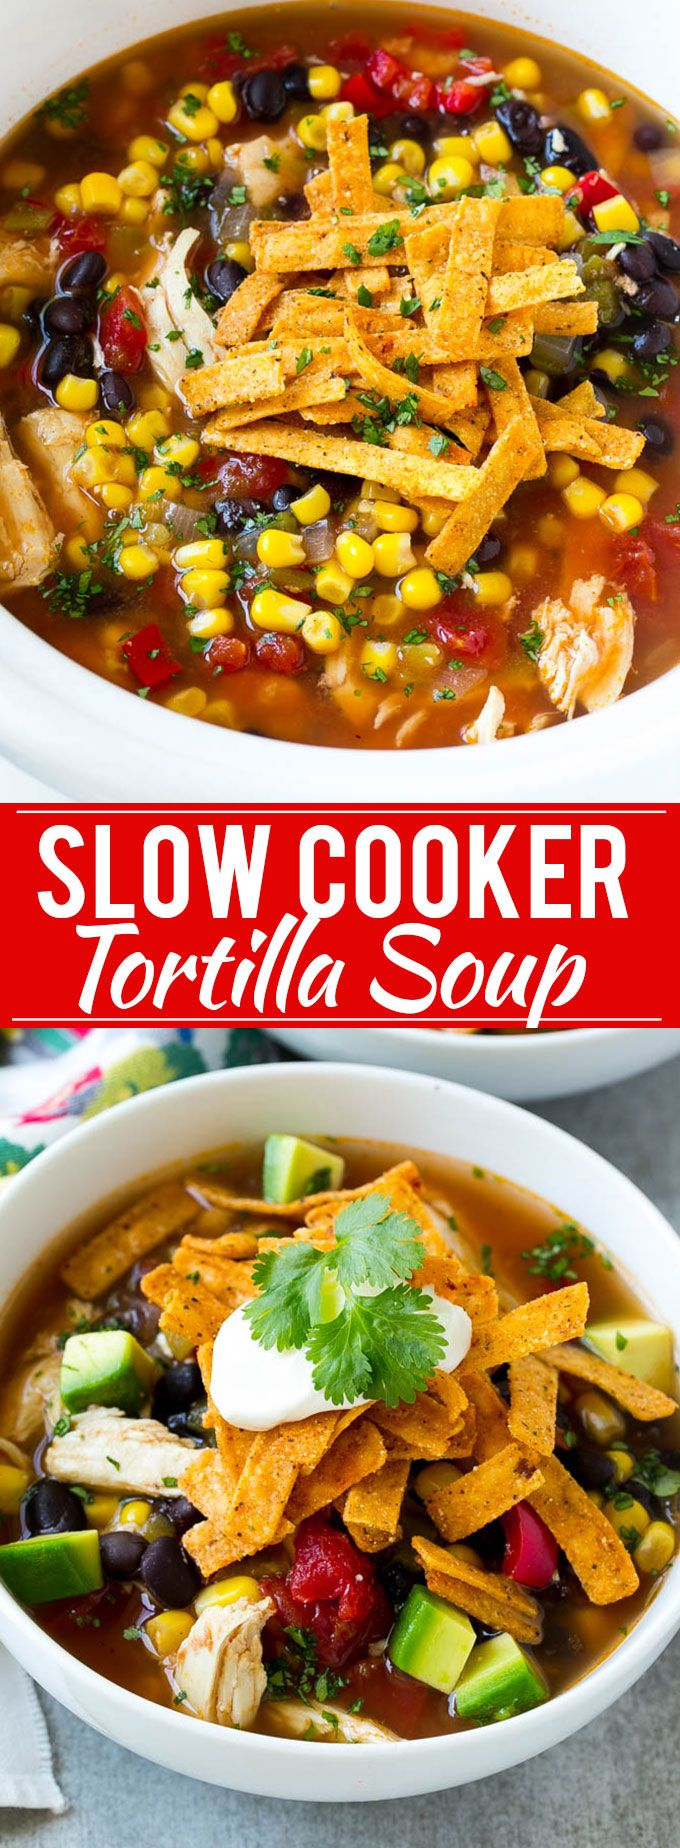 Slow Cooker Chicken Tortilla Soup Recipe  | Posted by: DebbieNet.com #chickentortillasoup